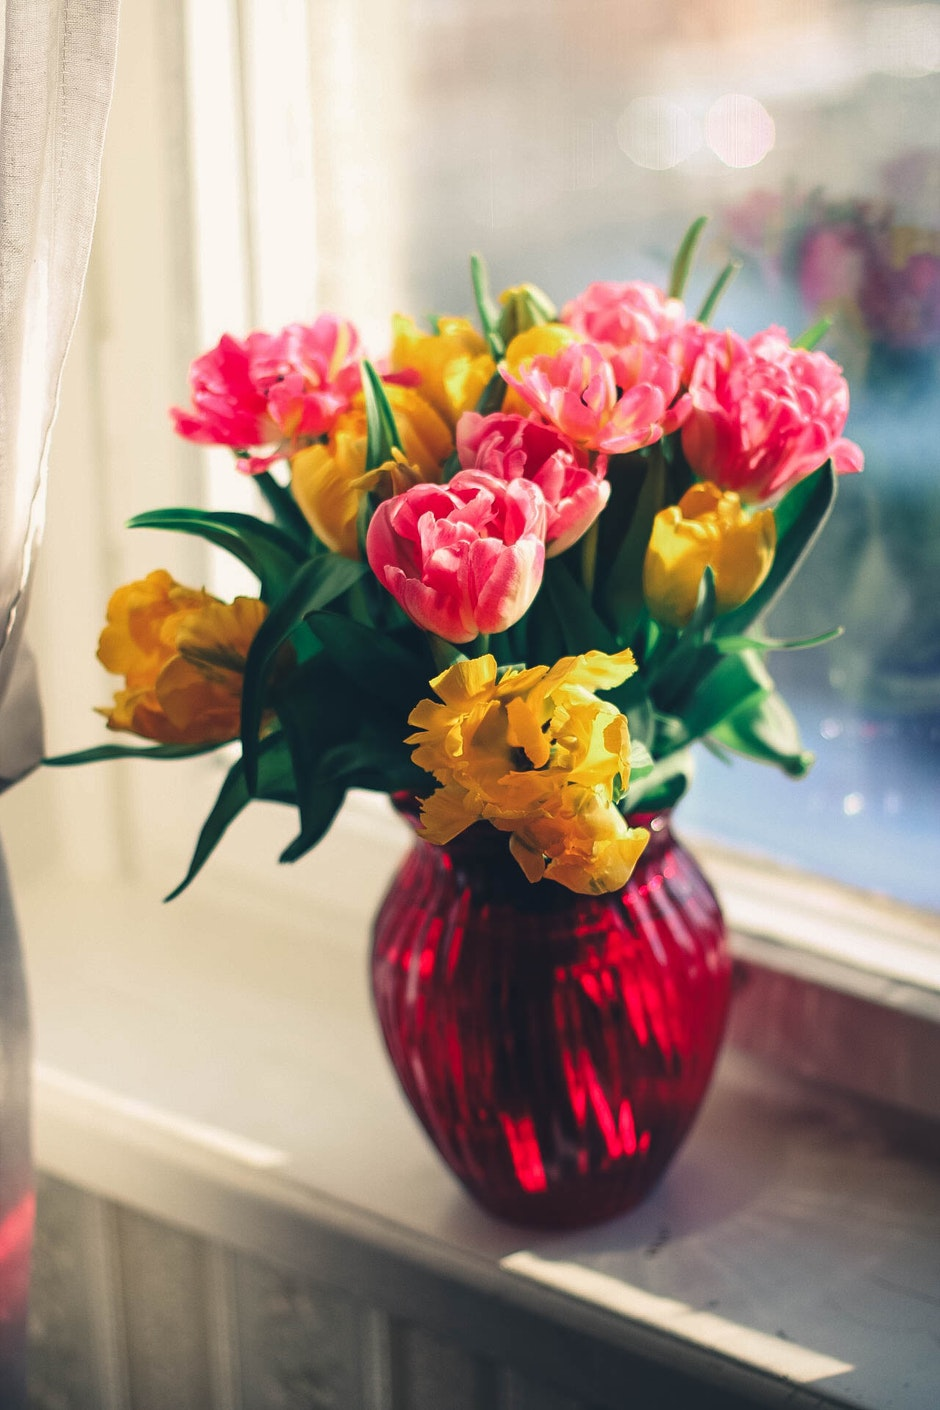 Pink and Yellow Petaled Flower on Red Glass Vase